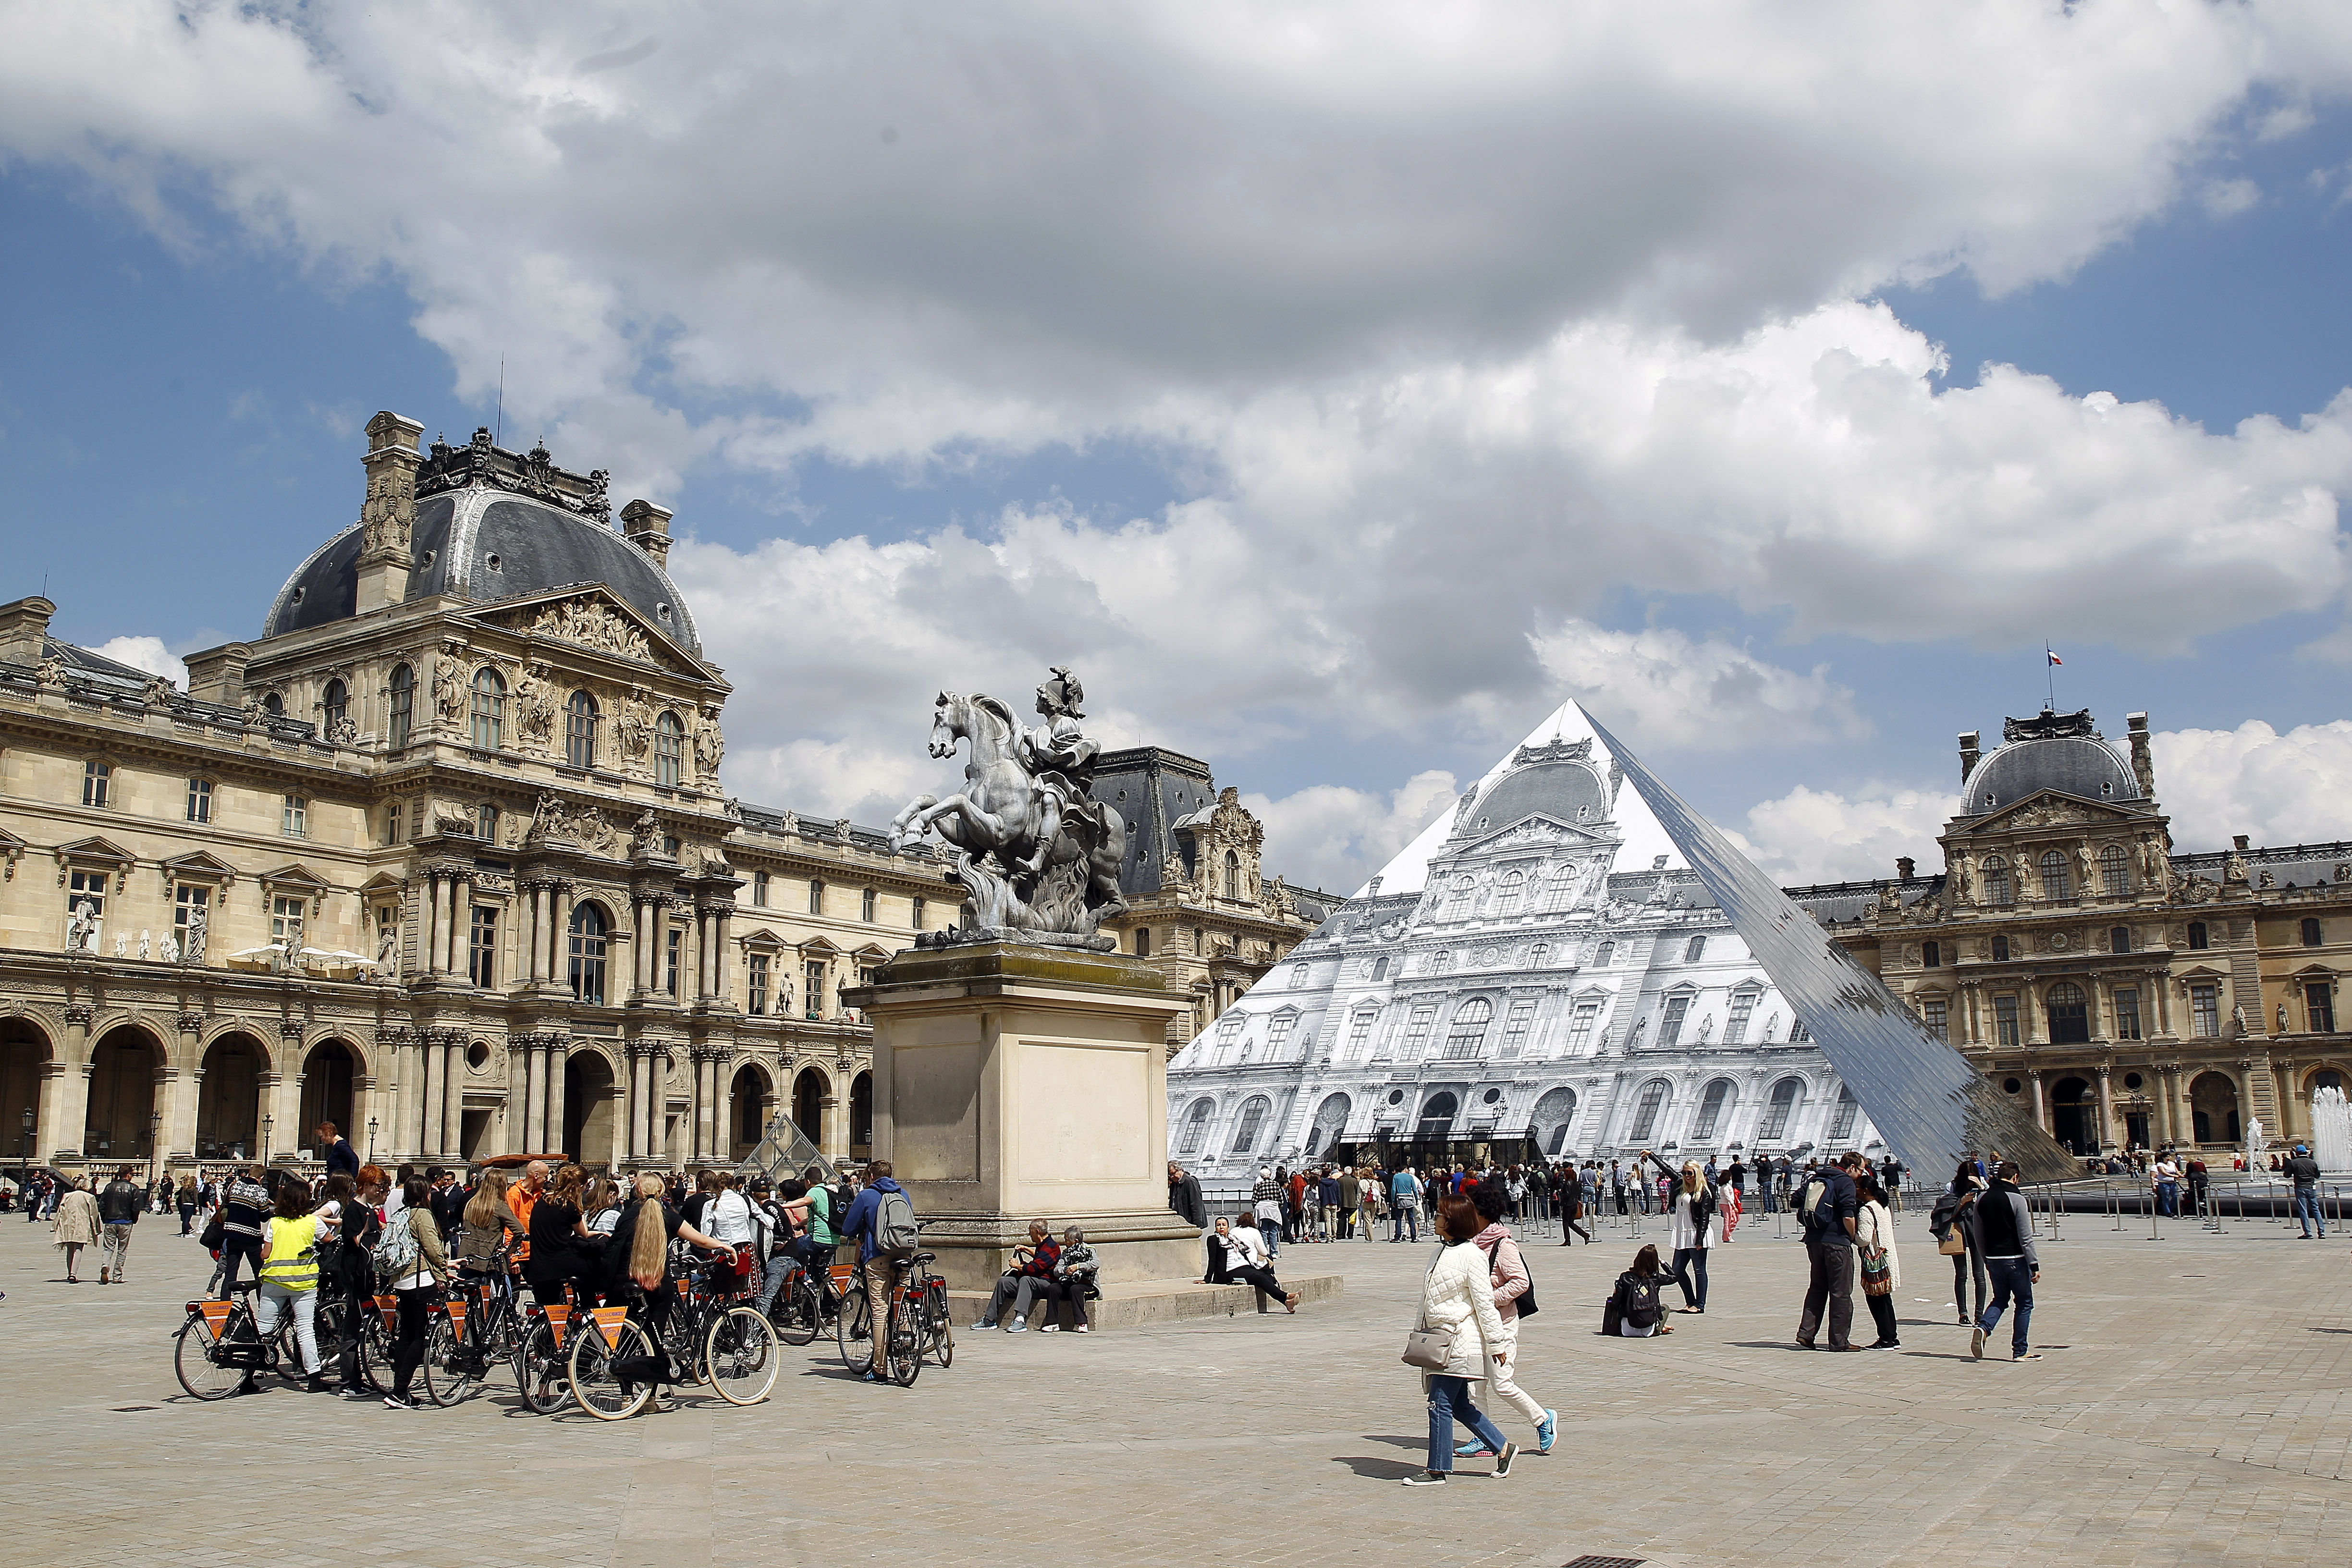 Artwork of French street artist and photographer JR is displayed on the Louvre Pyramid in Paris, May 25, 2016.